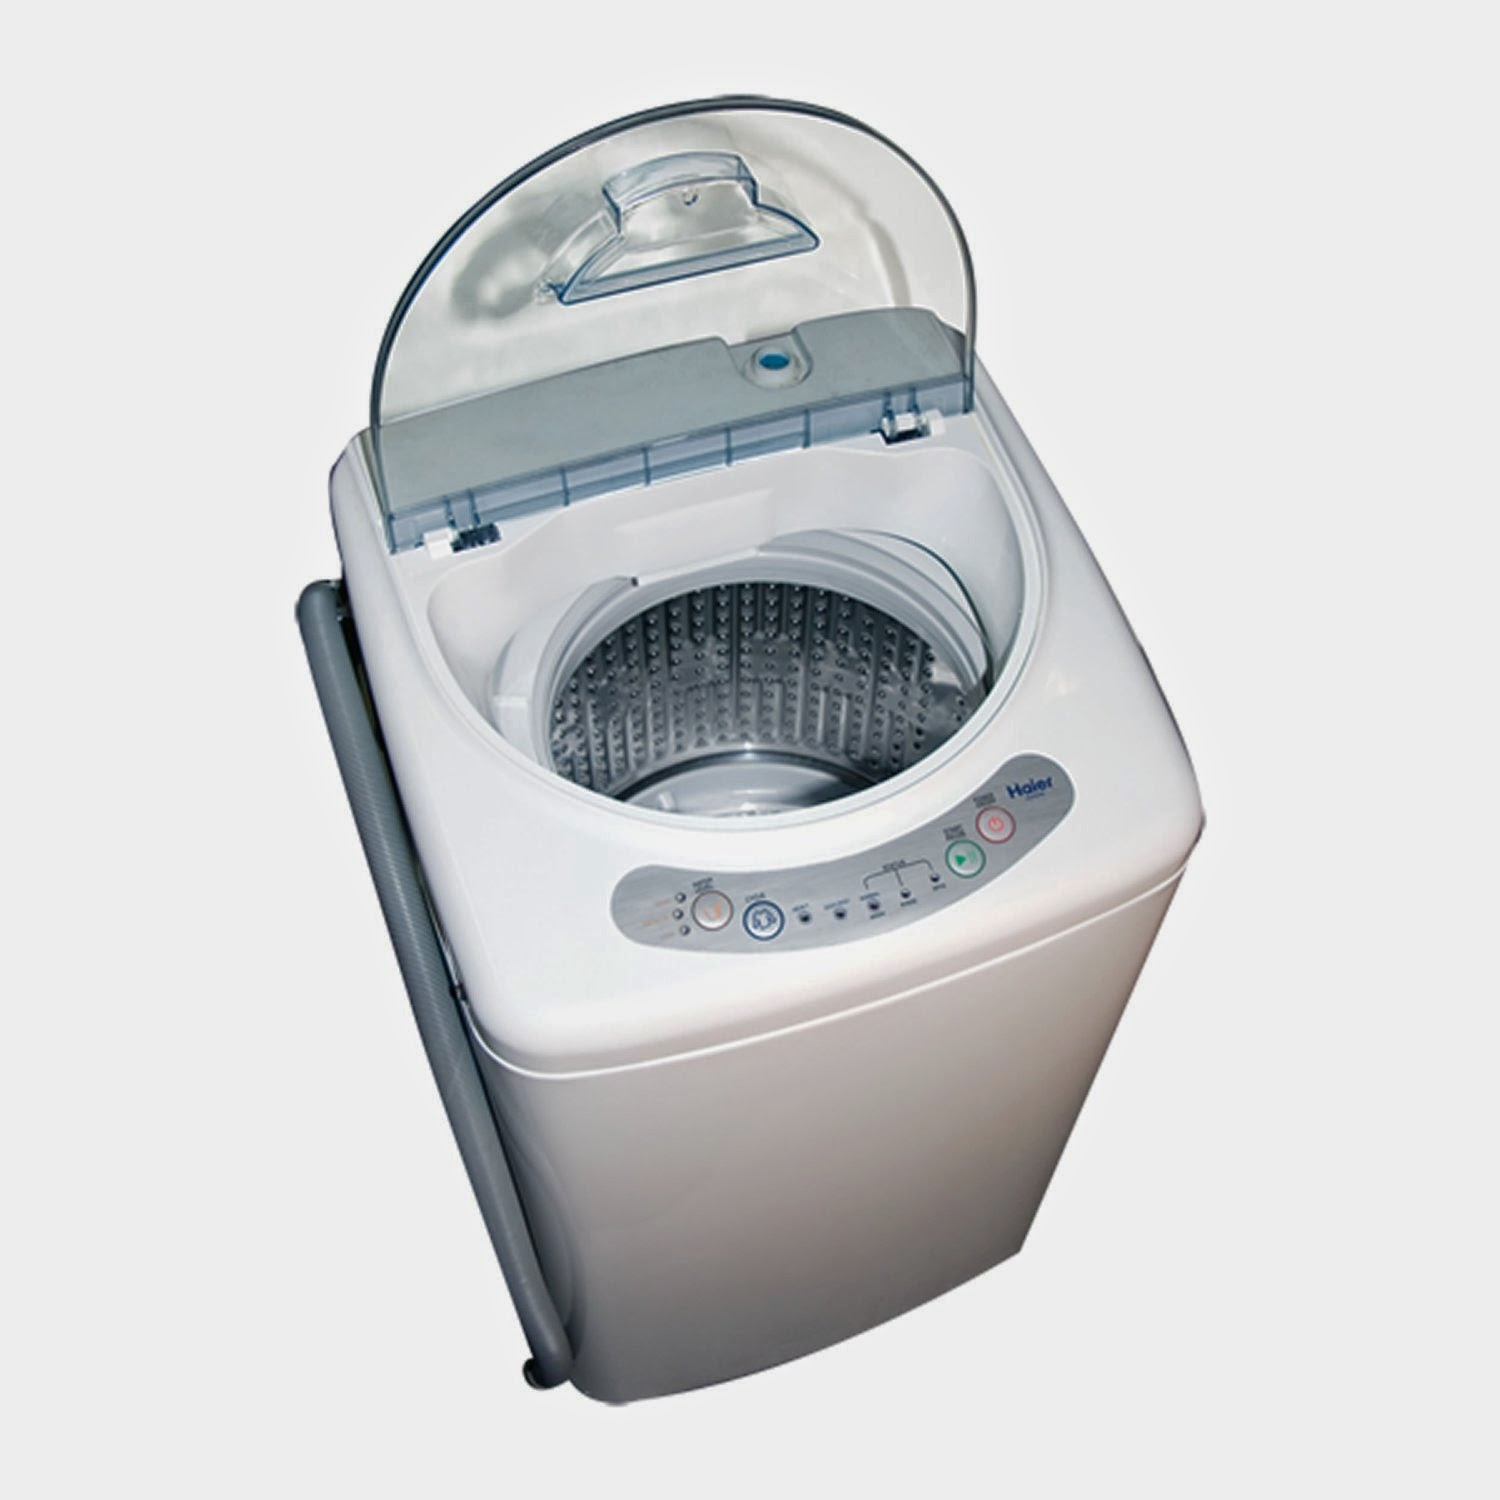 Miele stackable washer dryer ventless - Portable Washer Dryer Combo Portable Washer And Dryer Combo For Apartments